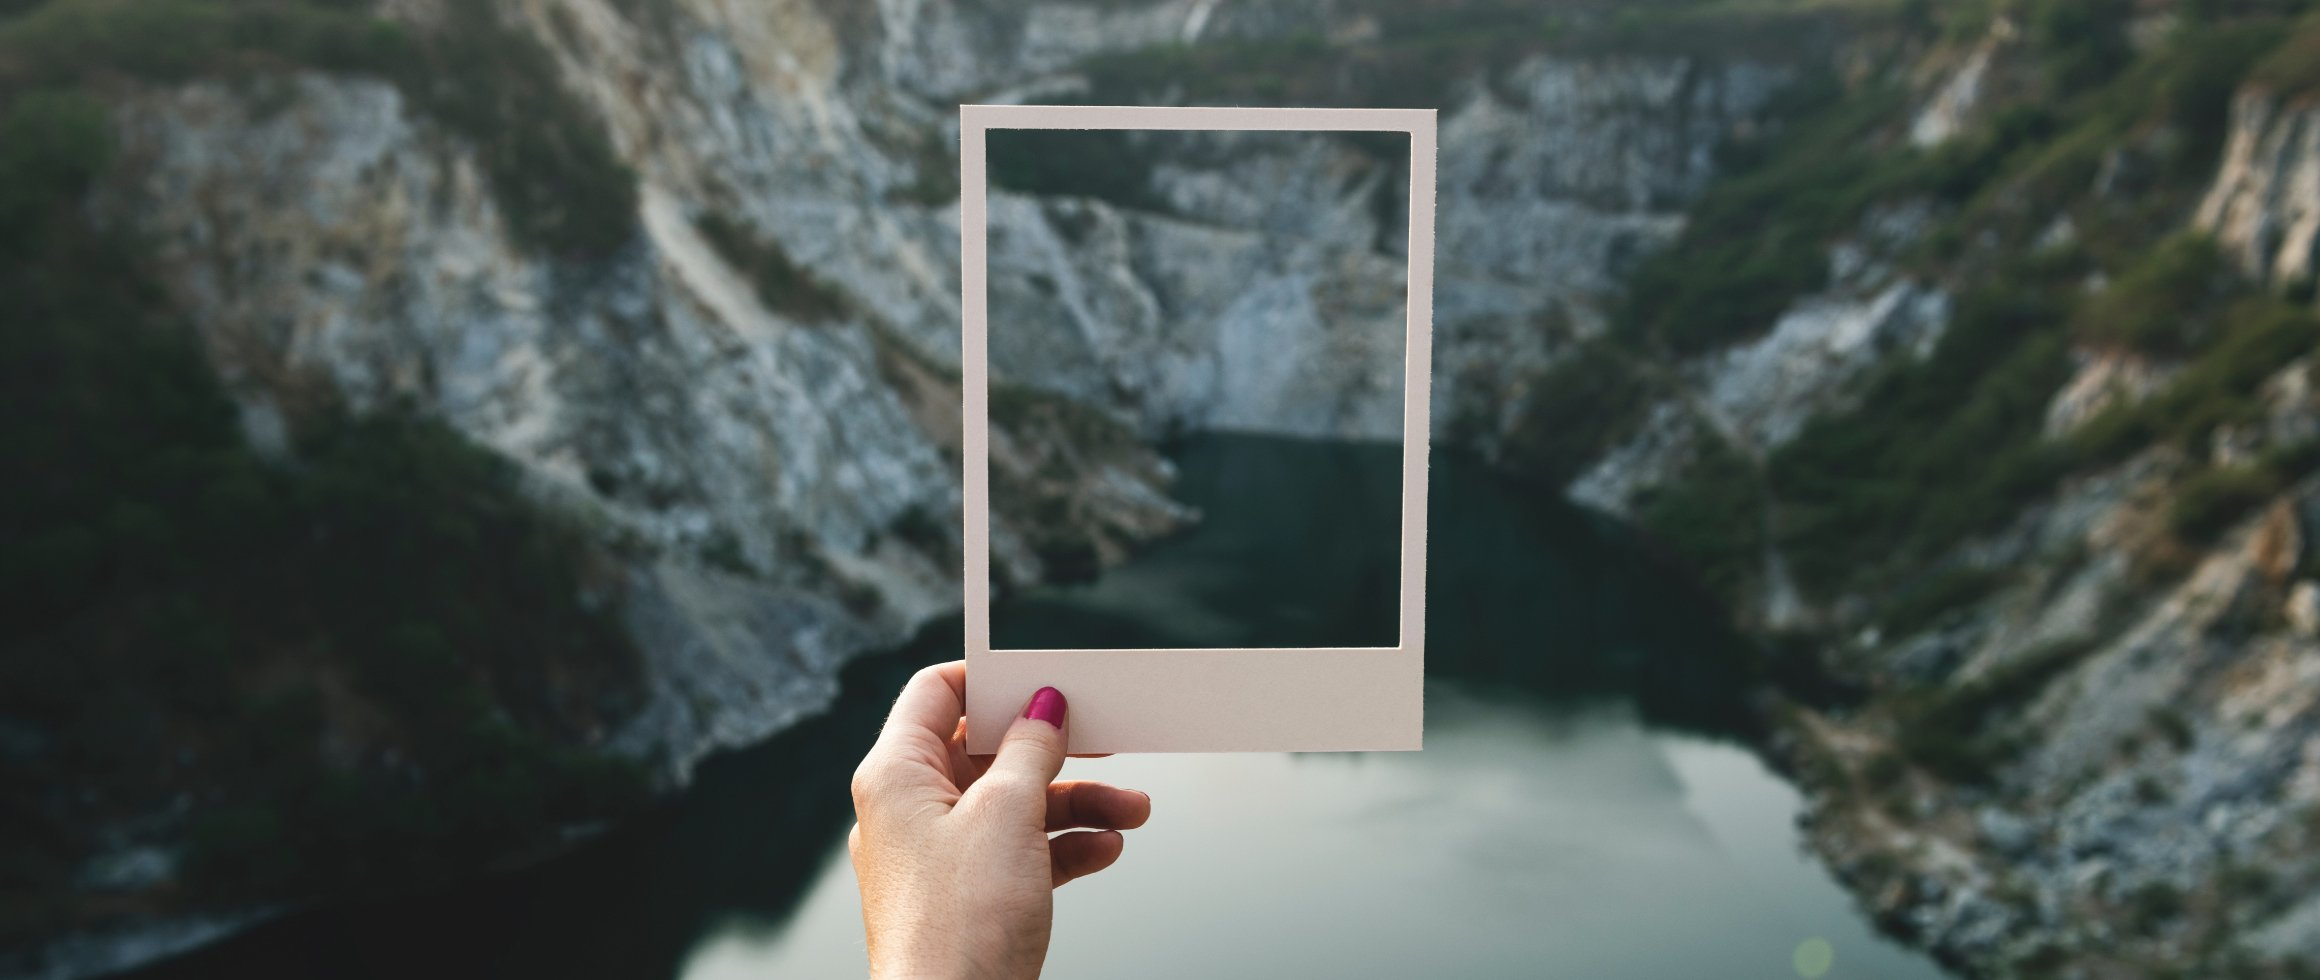 3 tips to help you get a clearer perspective